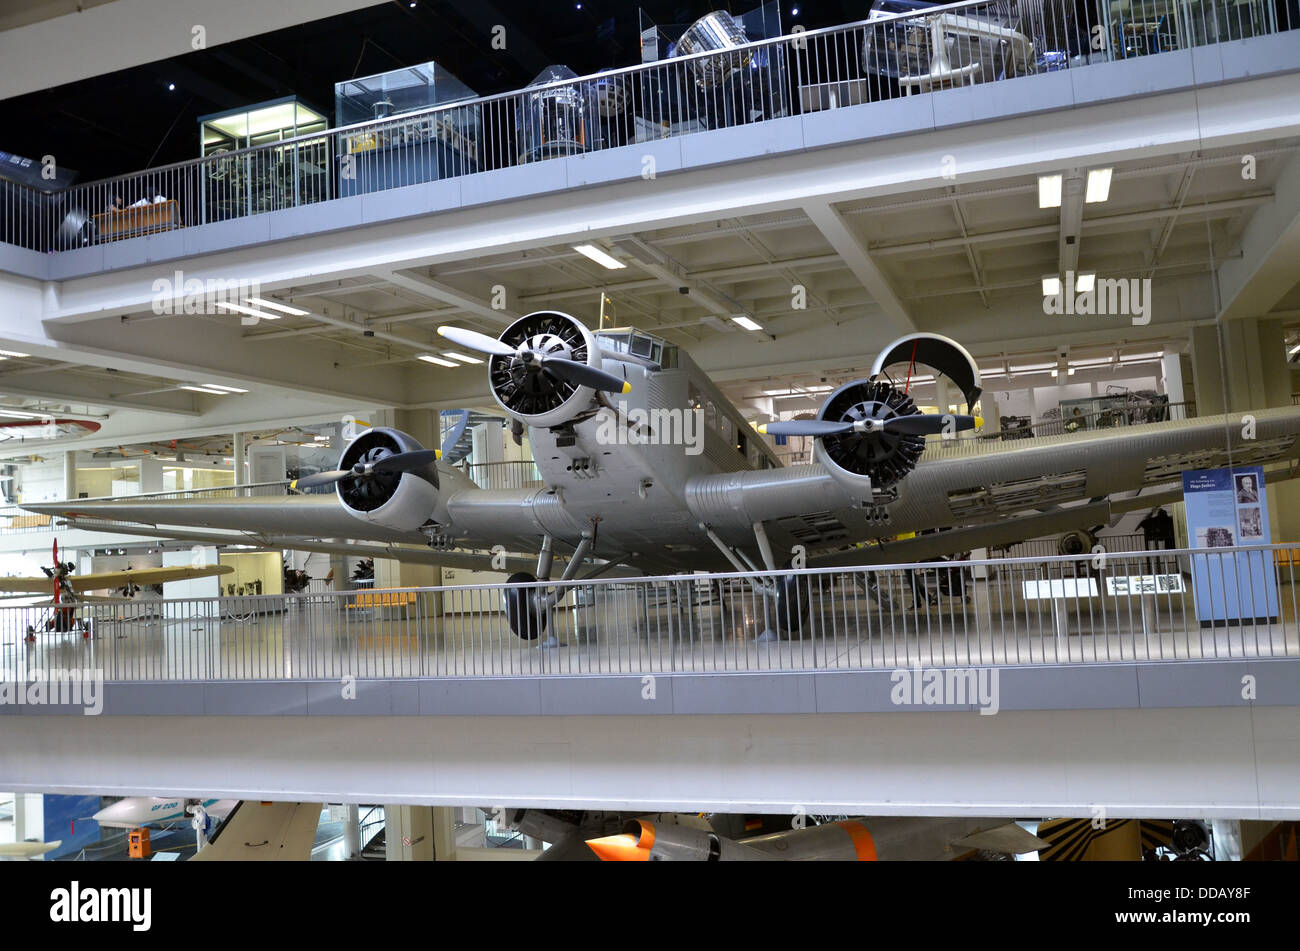 Germany Munich Deutsches Museum The three-engined Junkers Ju 52 from 1932. - Stock Image